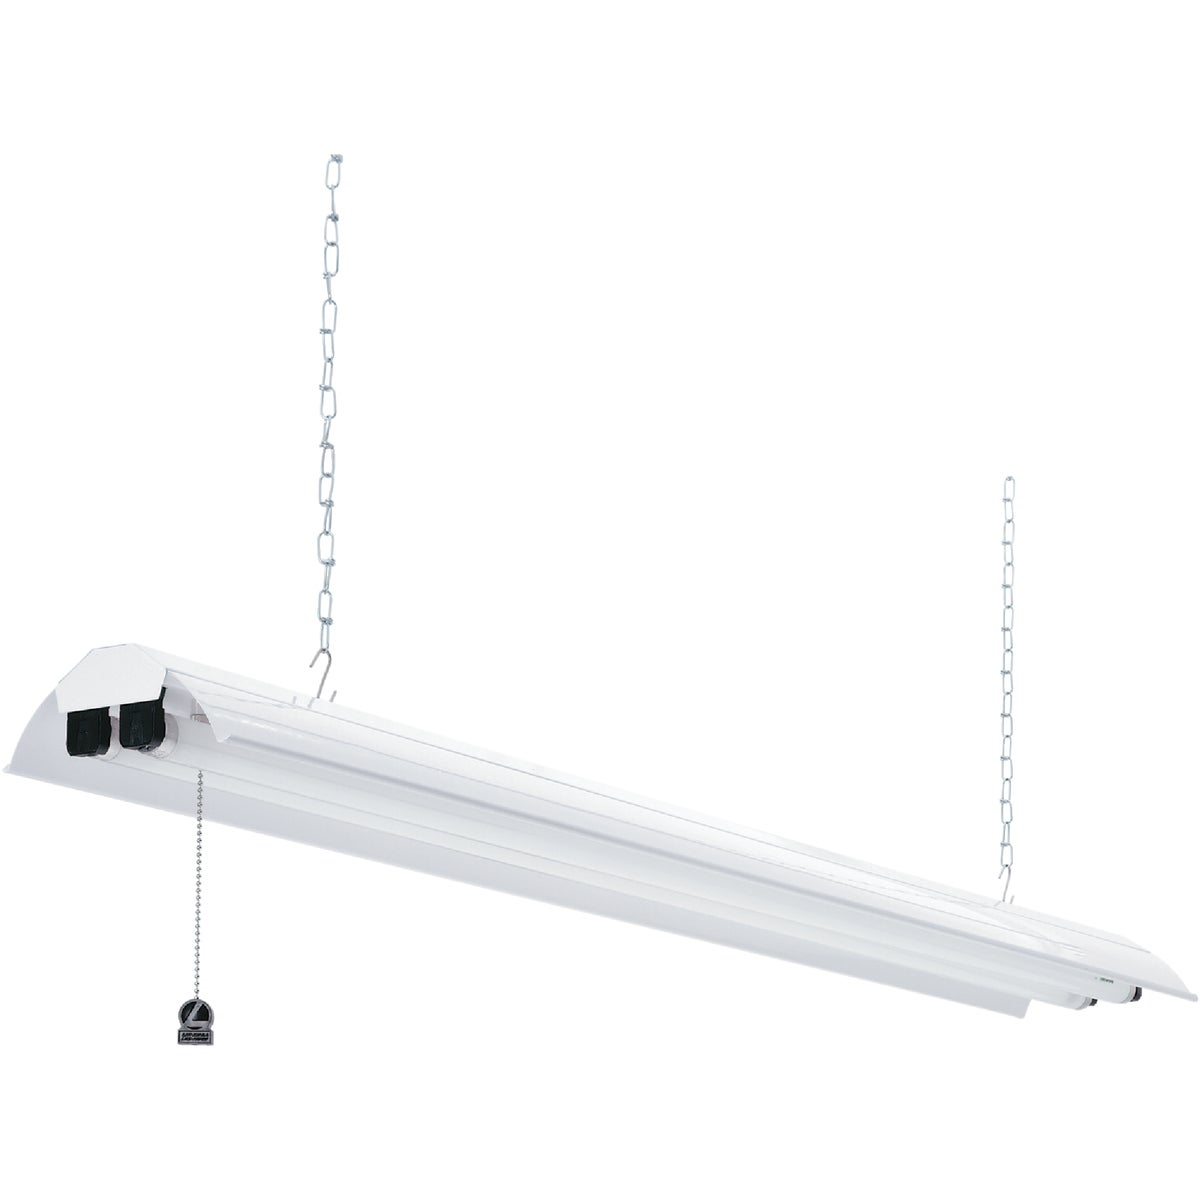 4' T8 2BULB SHOPLIGHT - 1245 by Lithonia Lighting